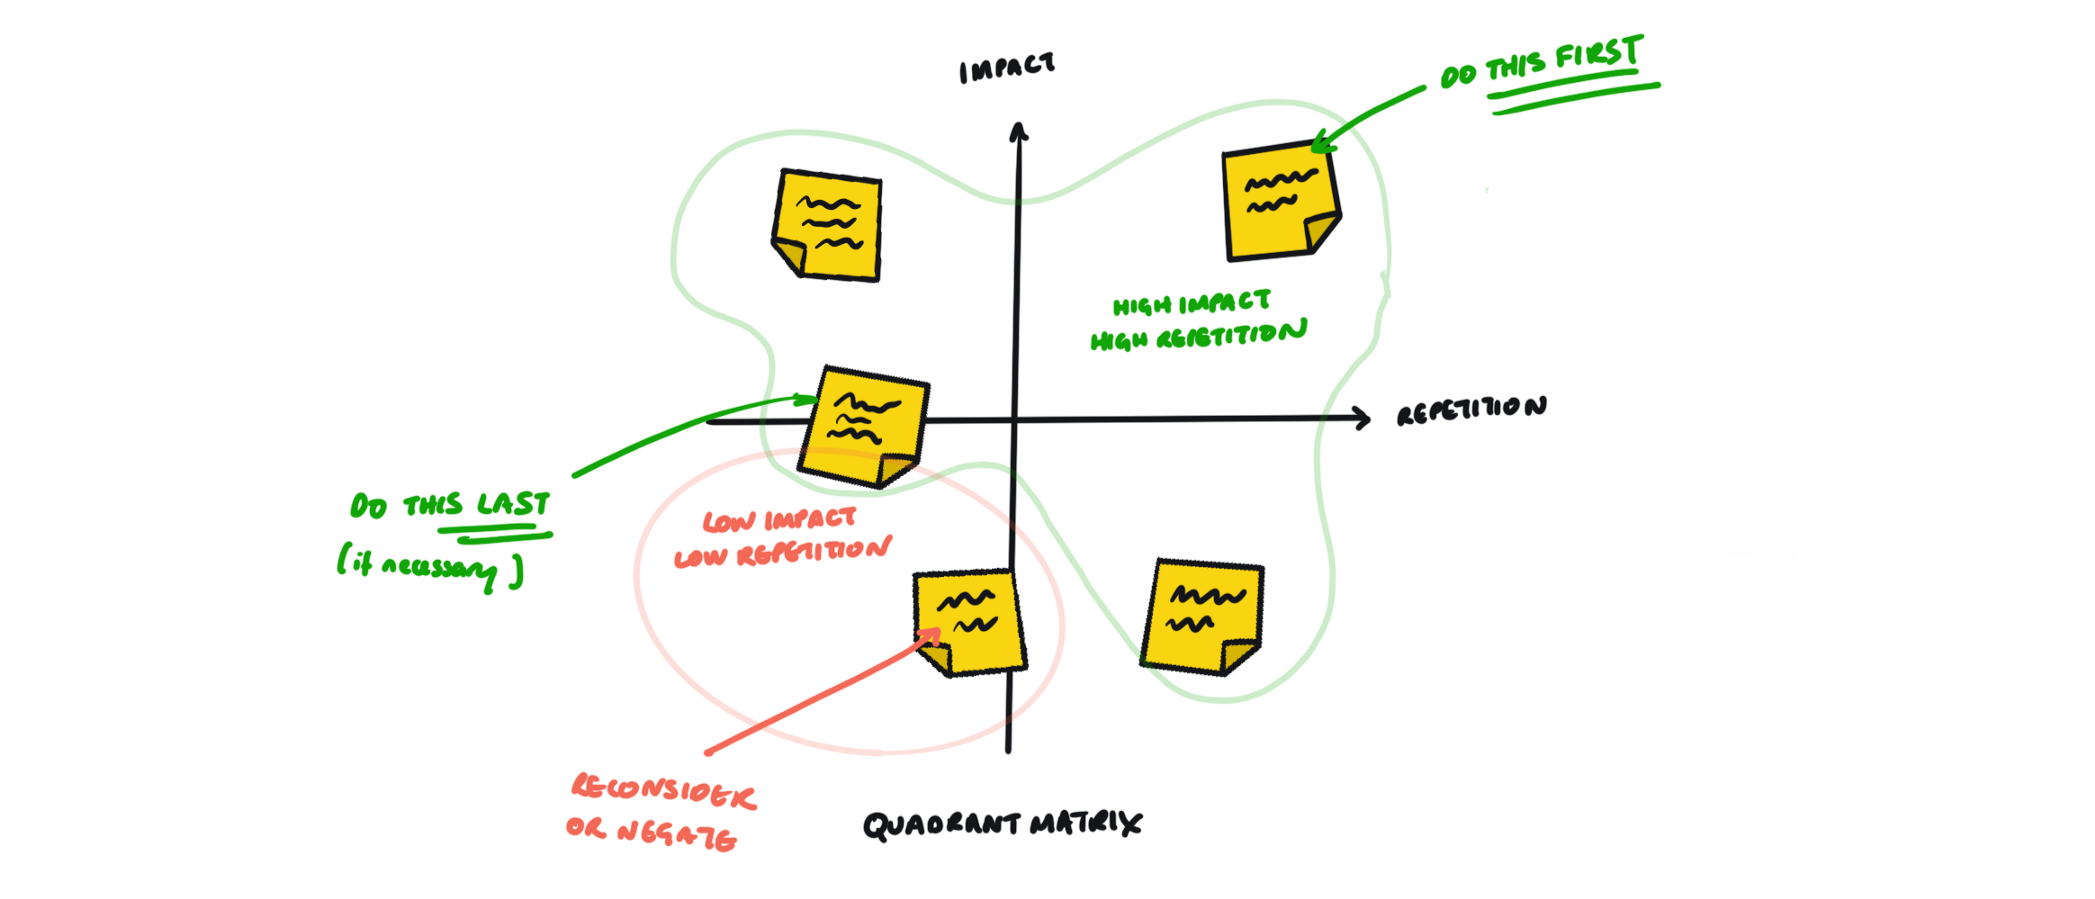 A quadrant of usability issues with repetition versus impact